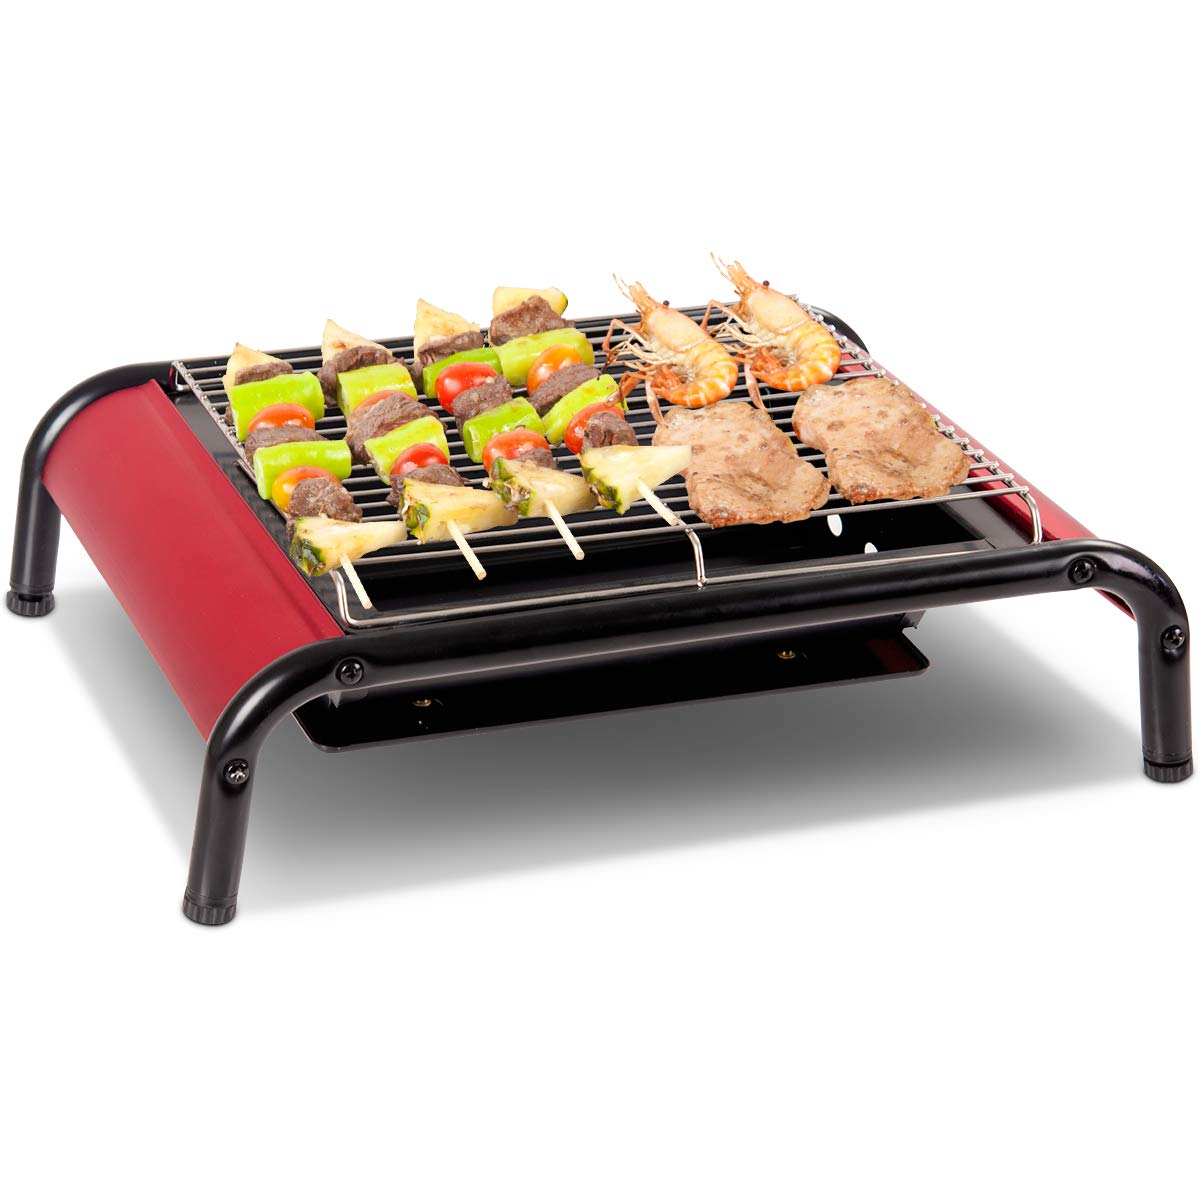 Costway Charcoal BBQ Grill Portable Type & Large Freestanding Type Barbecue Cooking With Clip Suitable for Camping Party Market Garden Patio Outdoor (Large Freestanding Type)